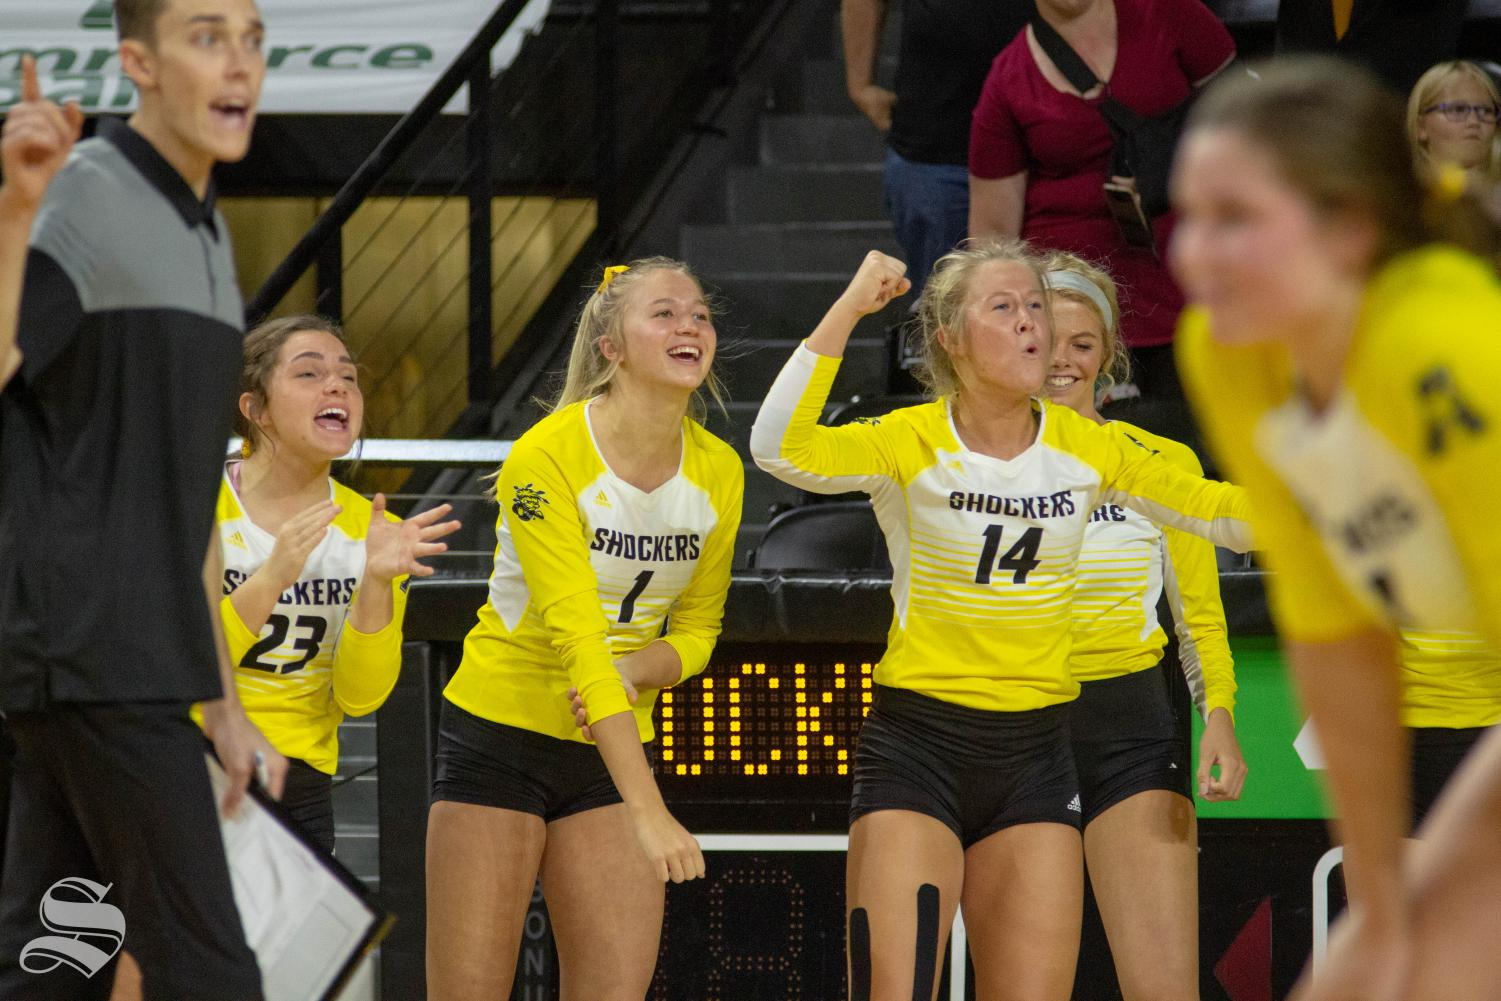 Wichita+State+freshman+Skylar+Goering+%281%29+and+junior+McKayla+Wuensch+%2814%29+celebrate+a+point+during+the+Shockers%27+home+opener+against+BYU.